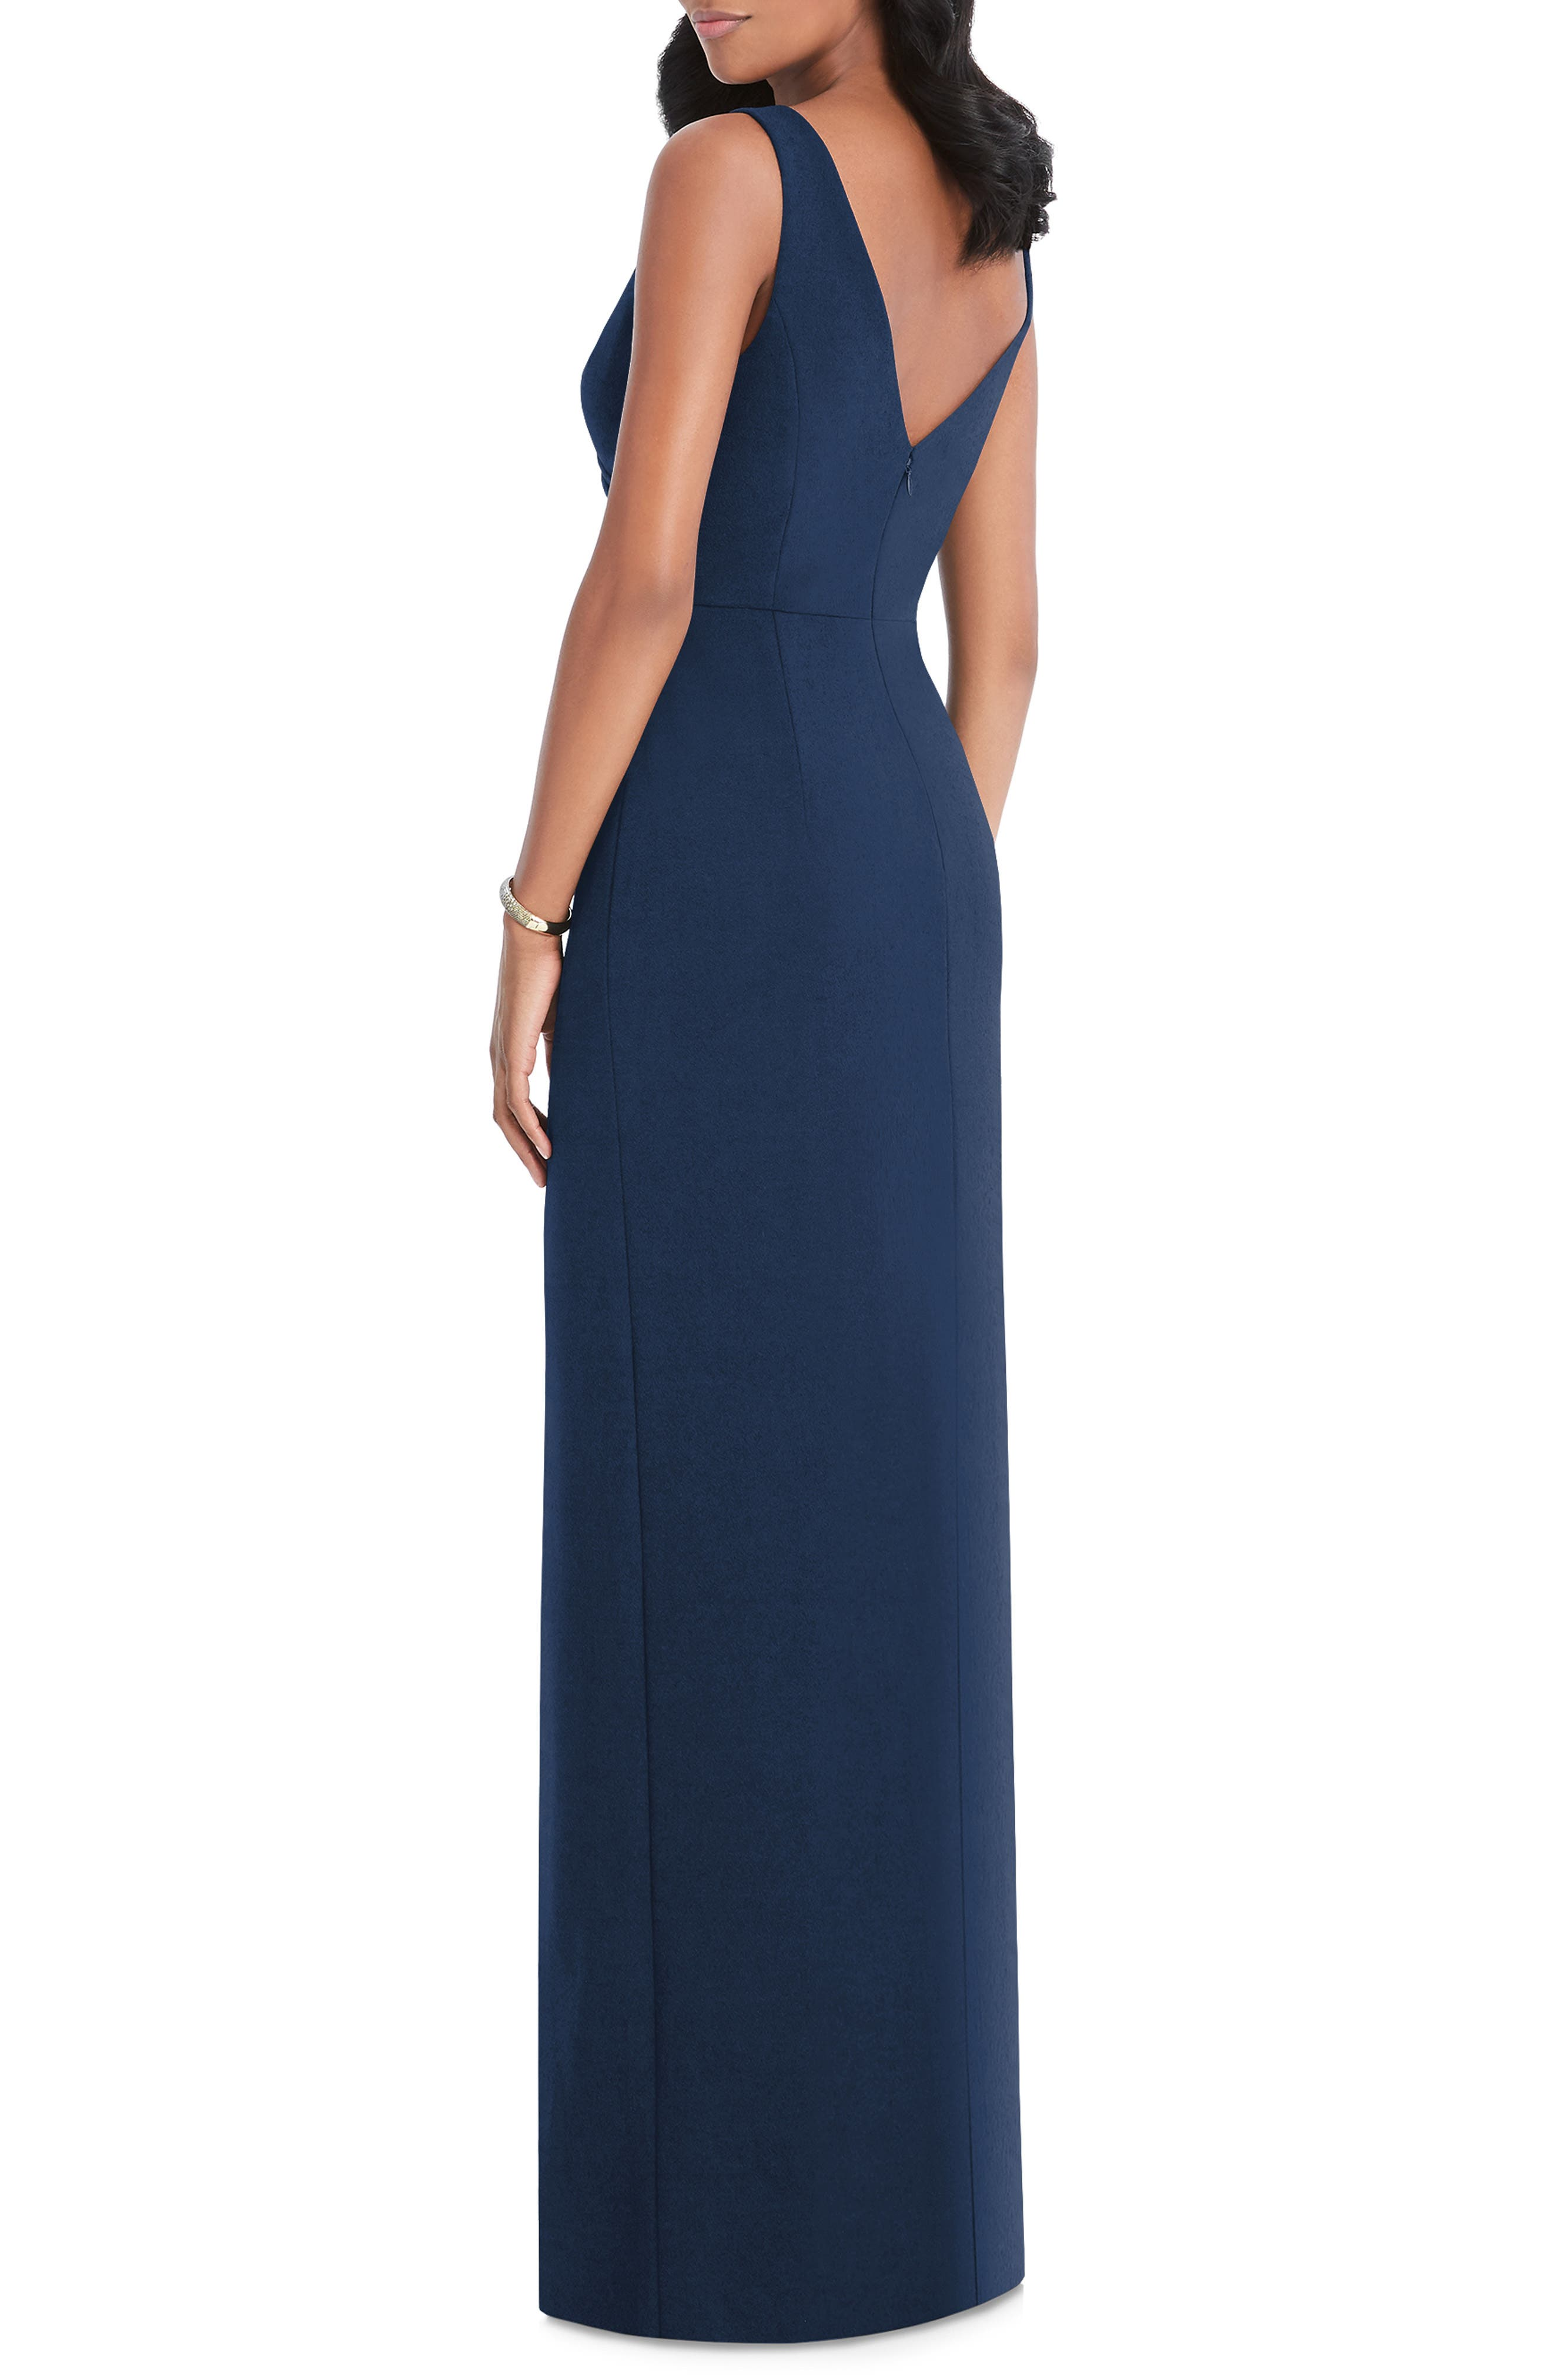 AFTER SIX, Pleated Surplice Stretch Crepe Gown, Alternate thumbnail 2, color, MIDNIGHT